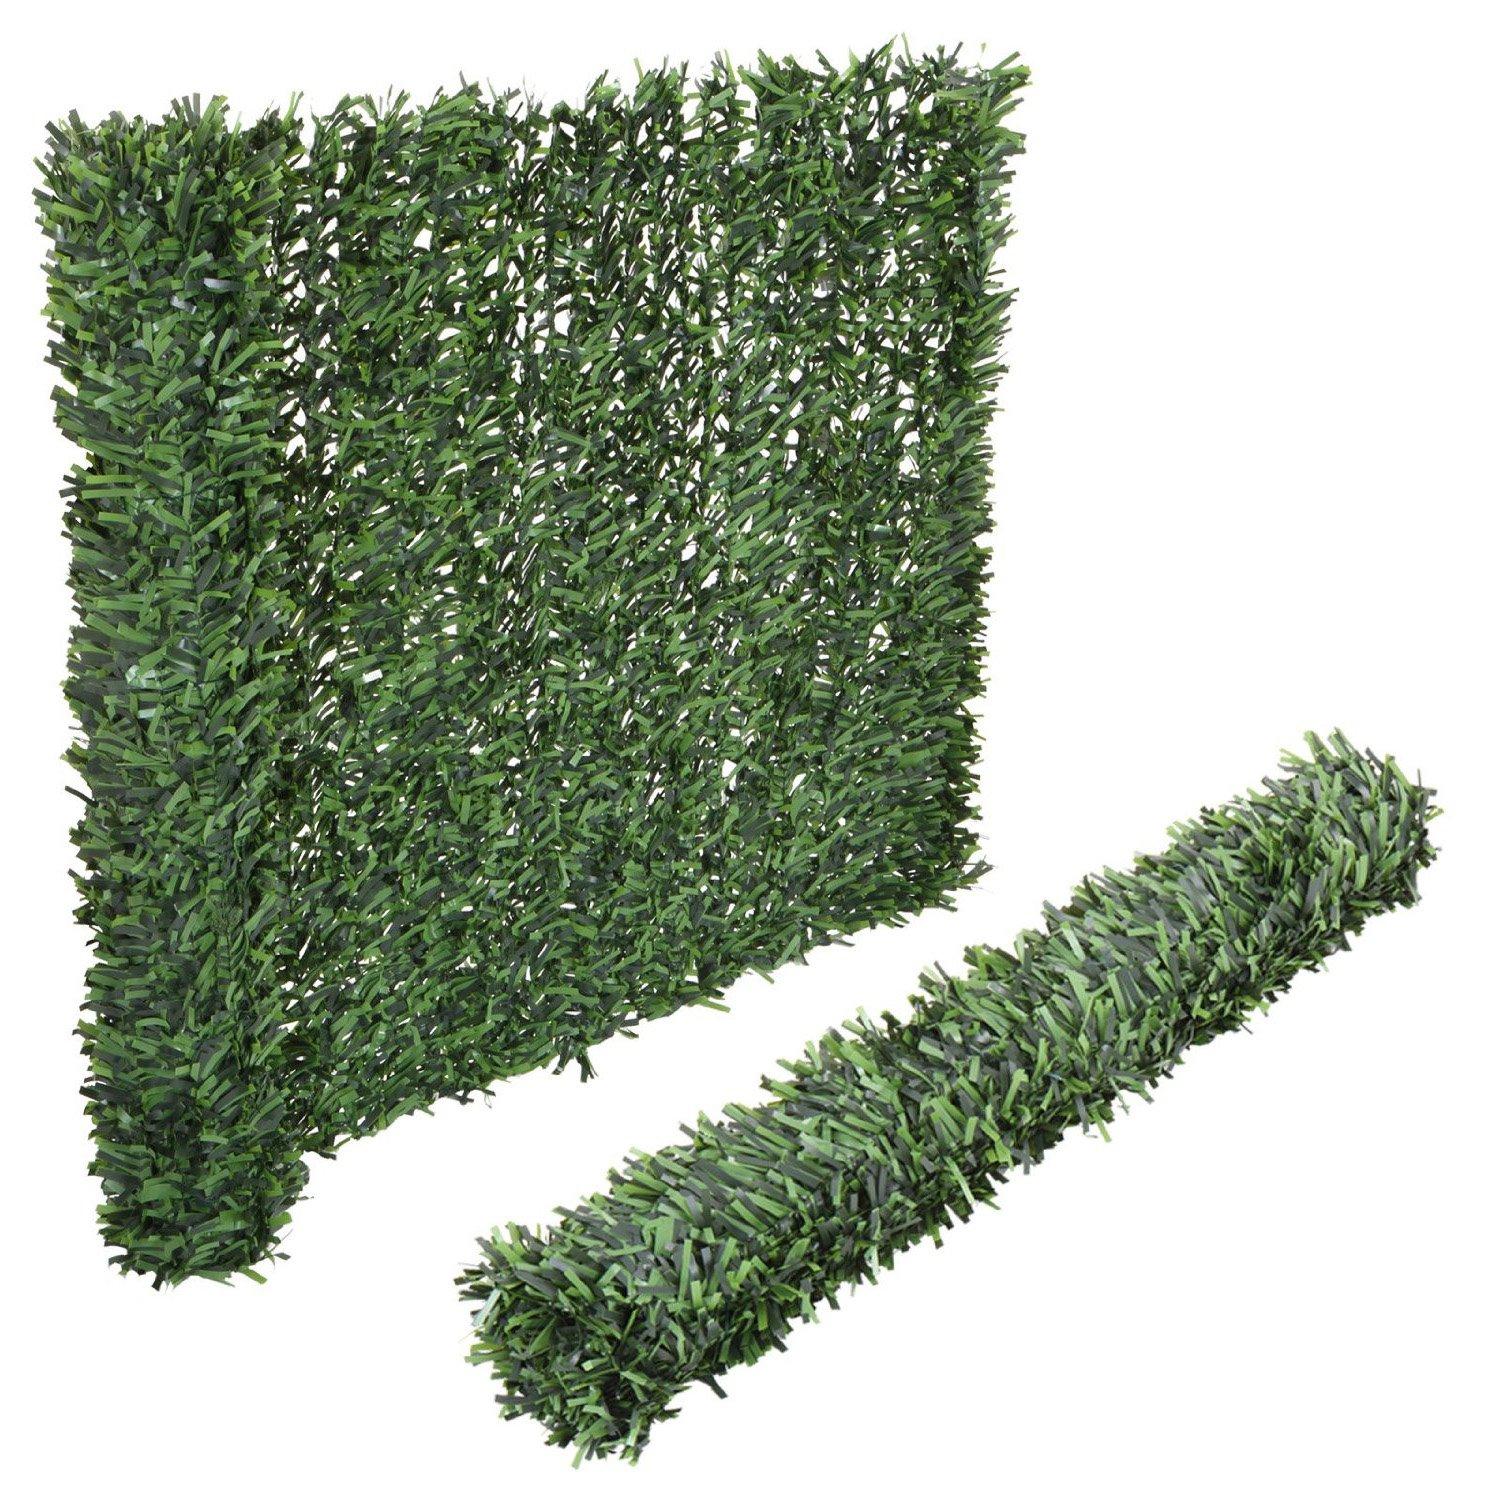 Synturfmats Artificial Hedge Slats Panels for Chain Link Fencing Outdoor Faux Hedge Privacy Screen Fence by Synturfmats